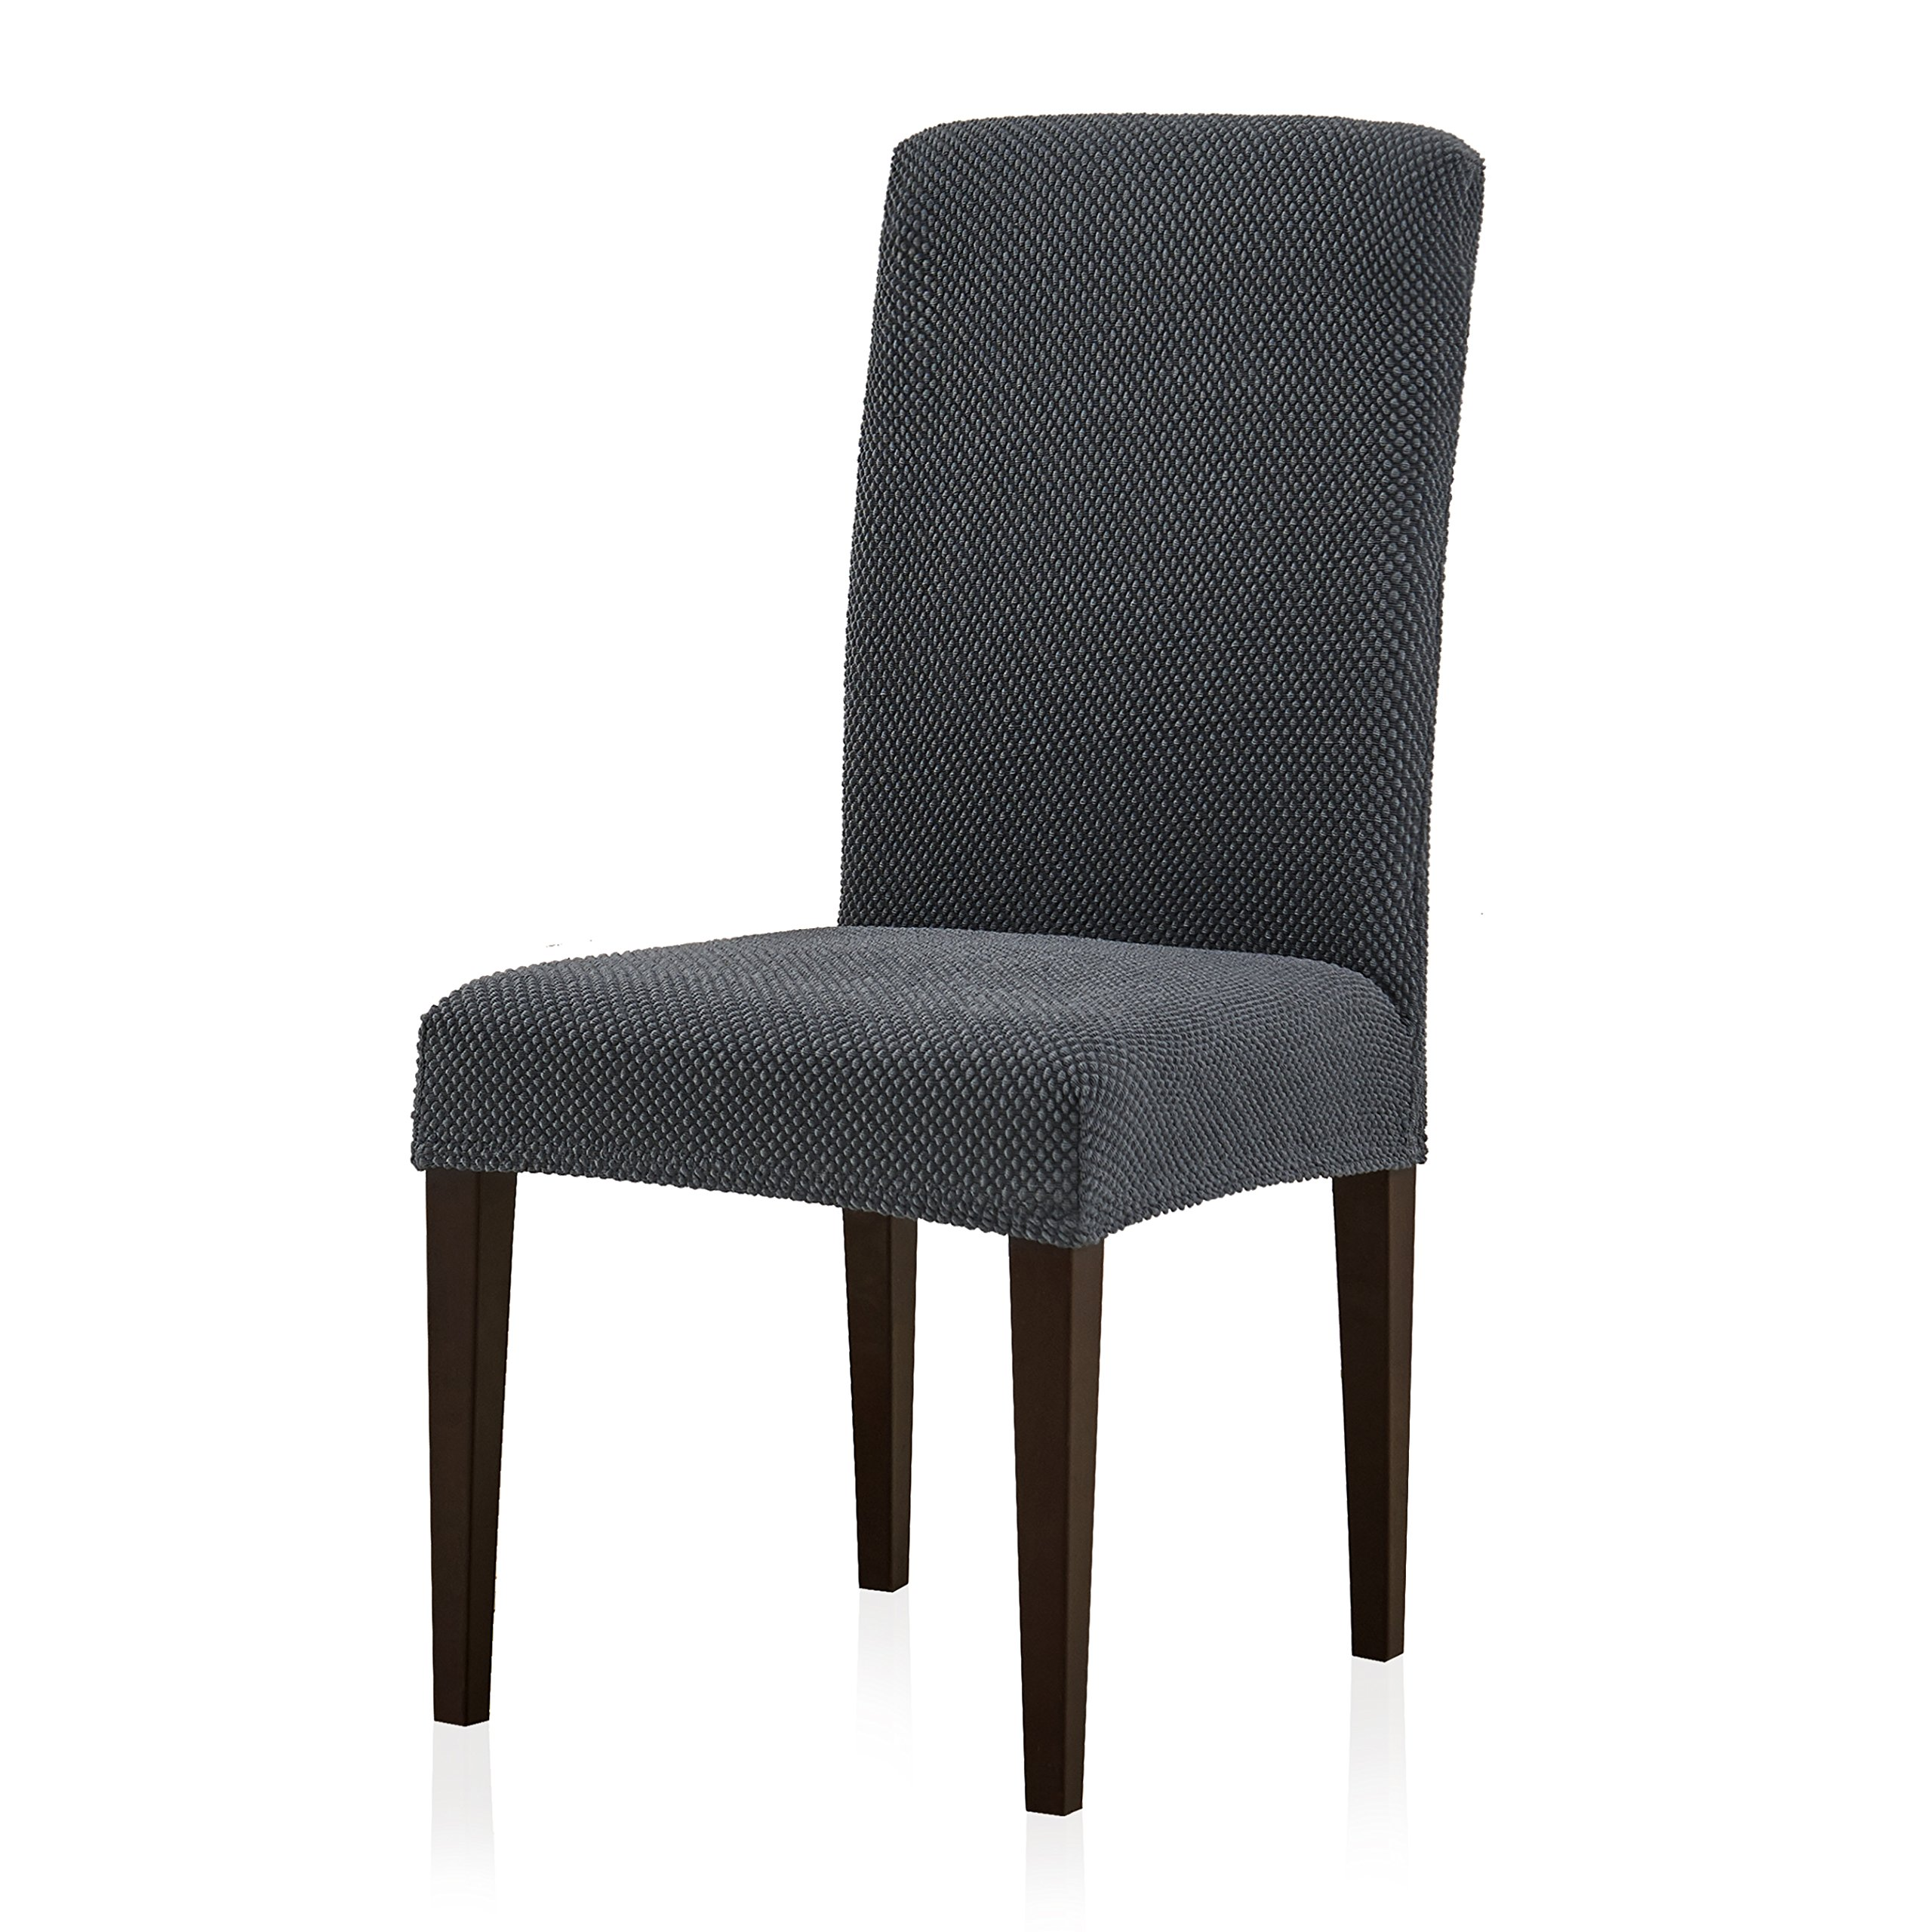 Subrtex Stretch Dining Room Chair Slipcovers (2, Gray Jacquard)